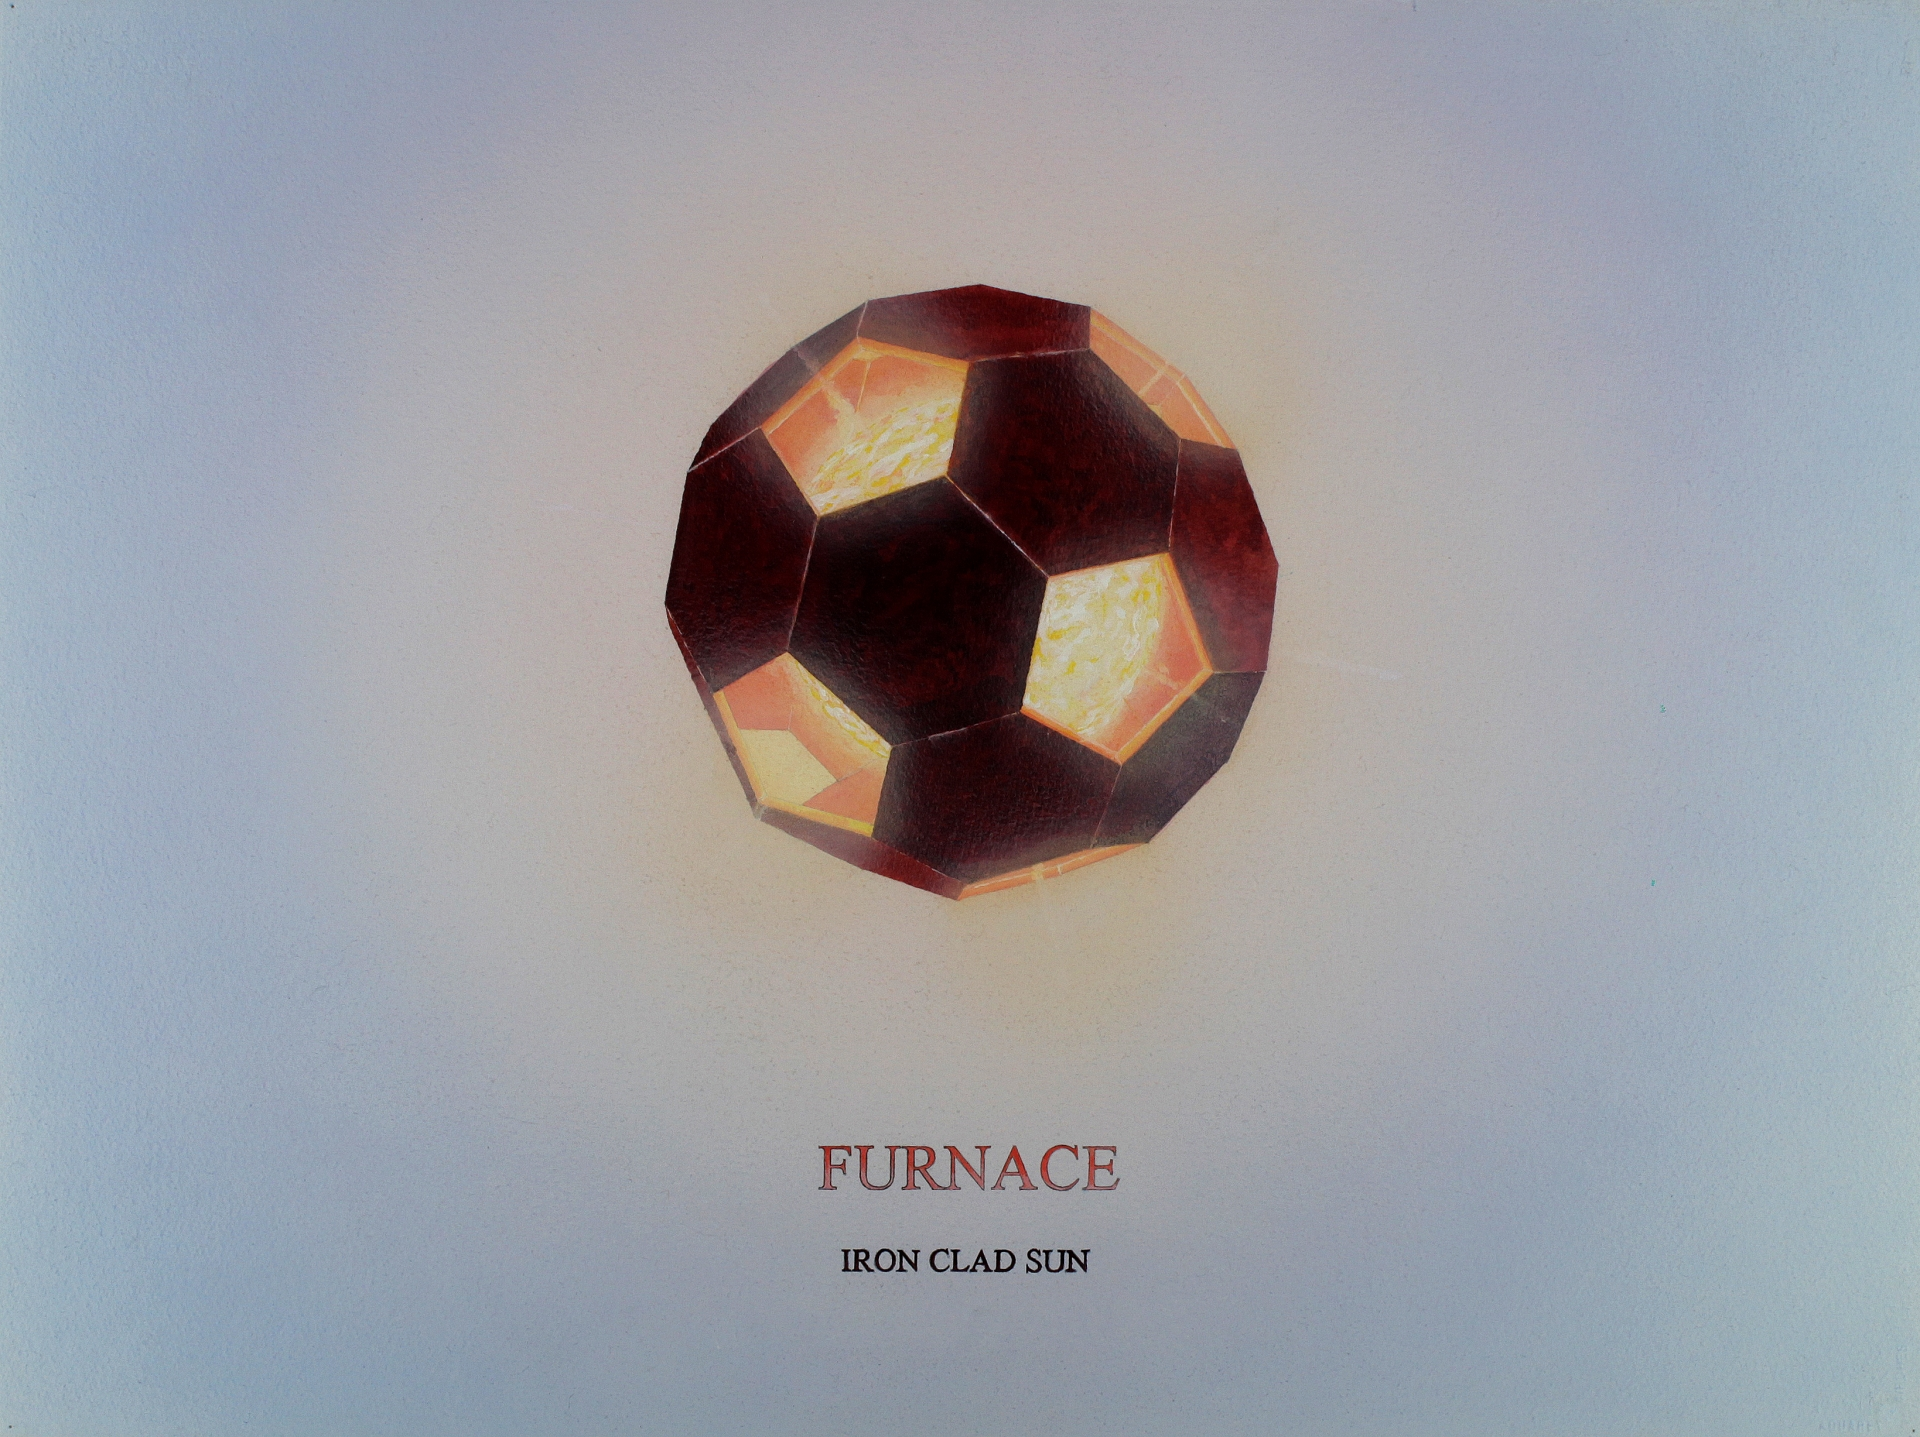 Furnace, 2007, acrylic, graphite on paper